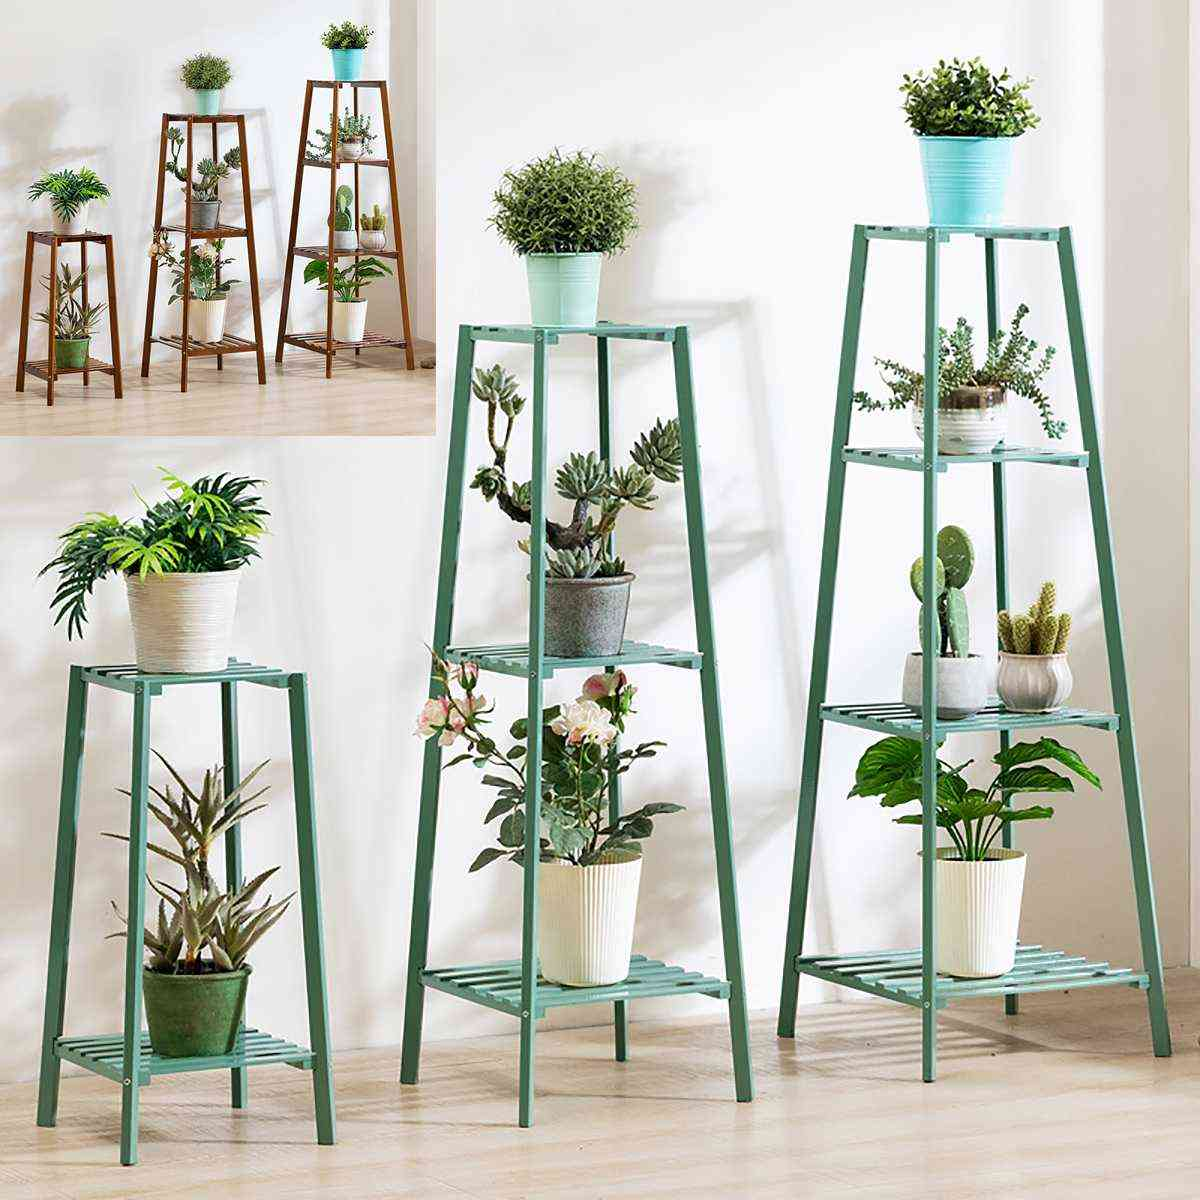 Four Layers Simplicity Metal Stand For Plants Landing Extravagant Multi-story Shelf Flowerpot